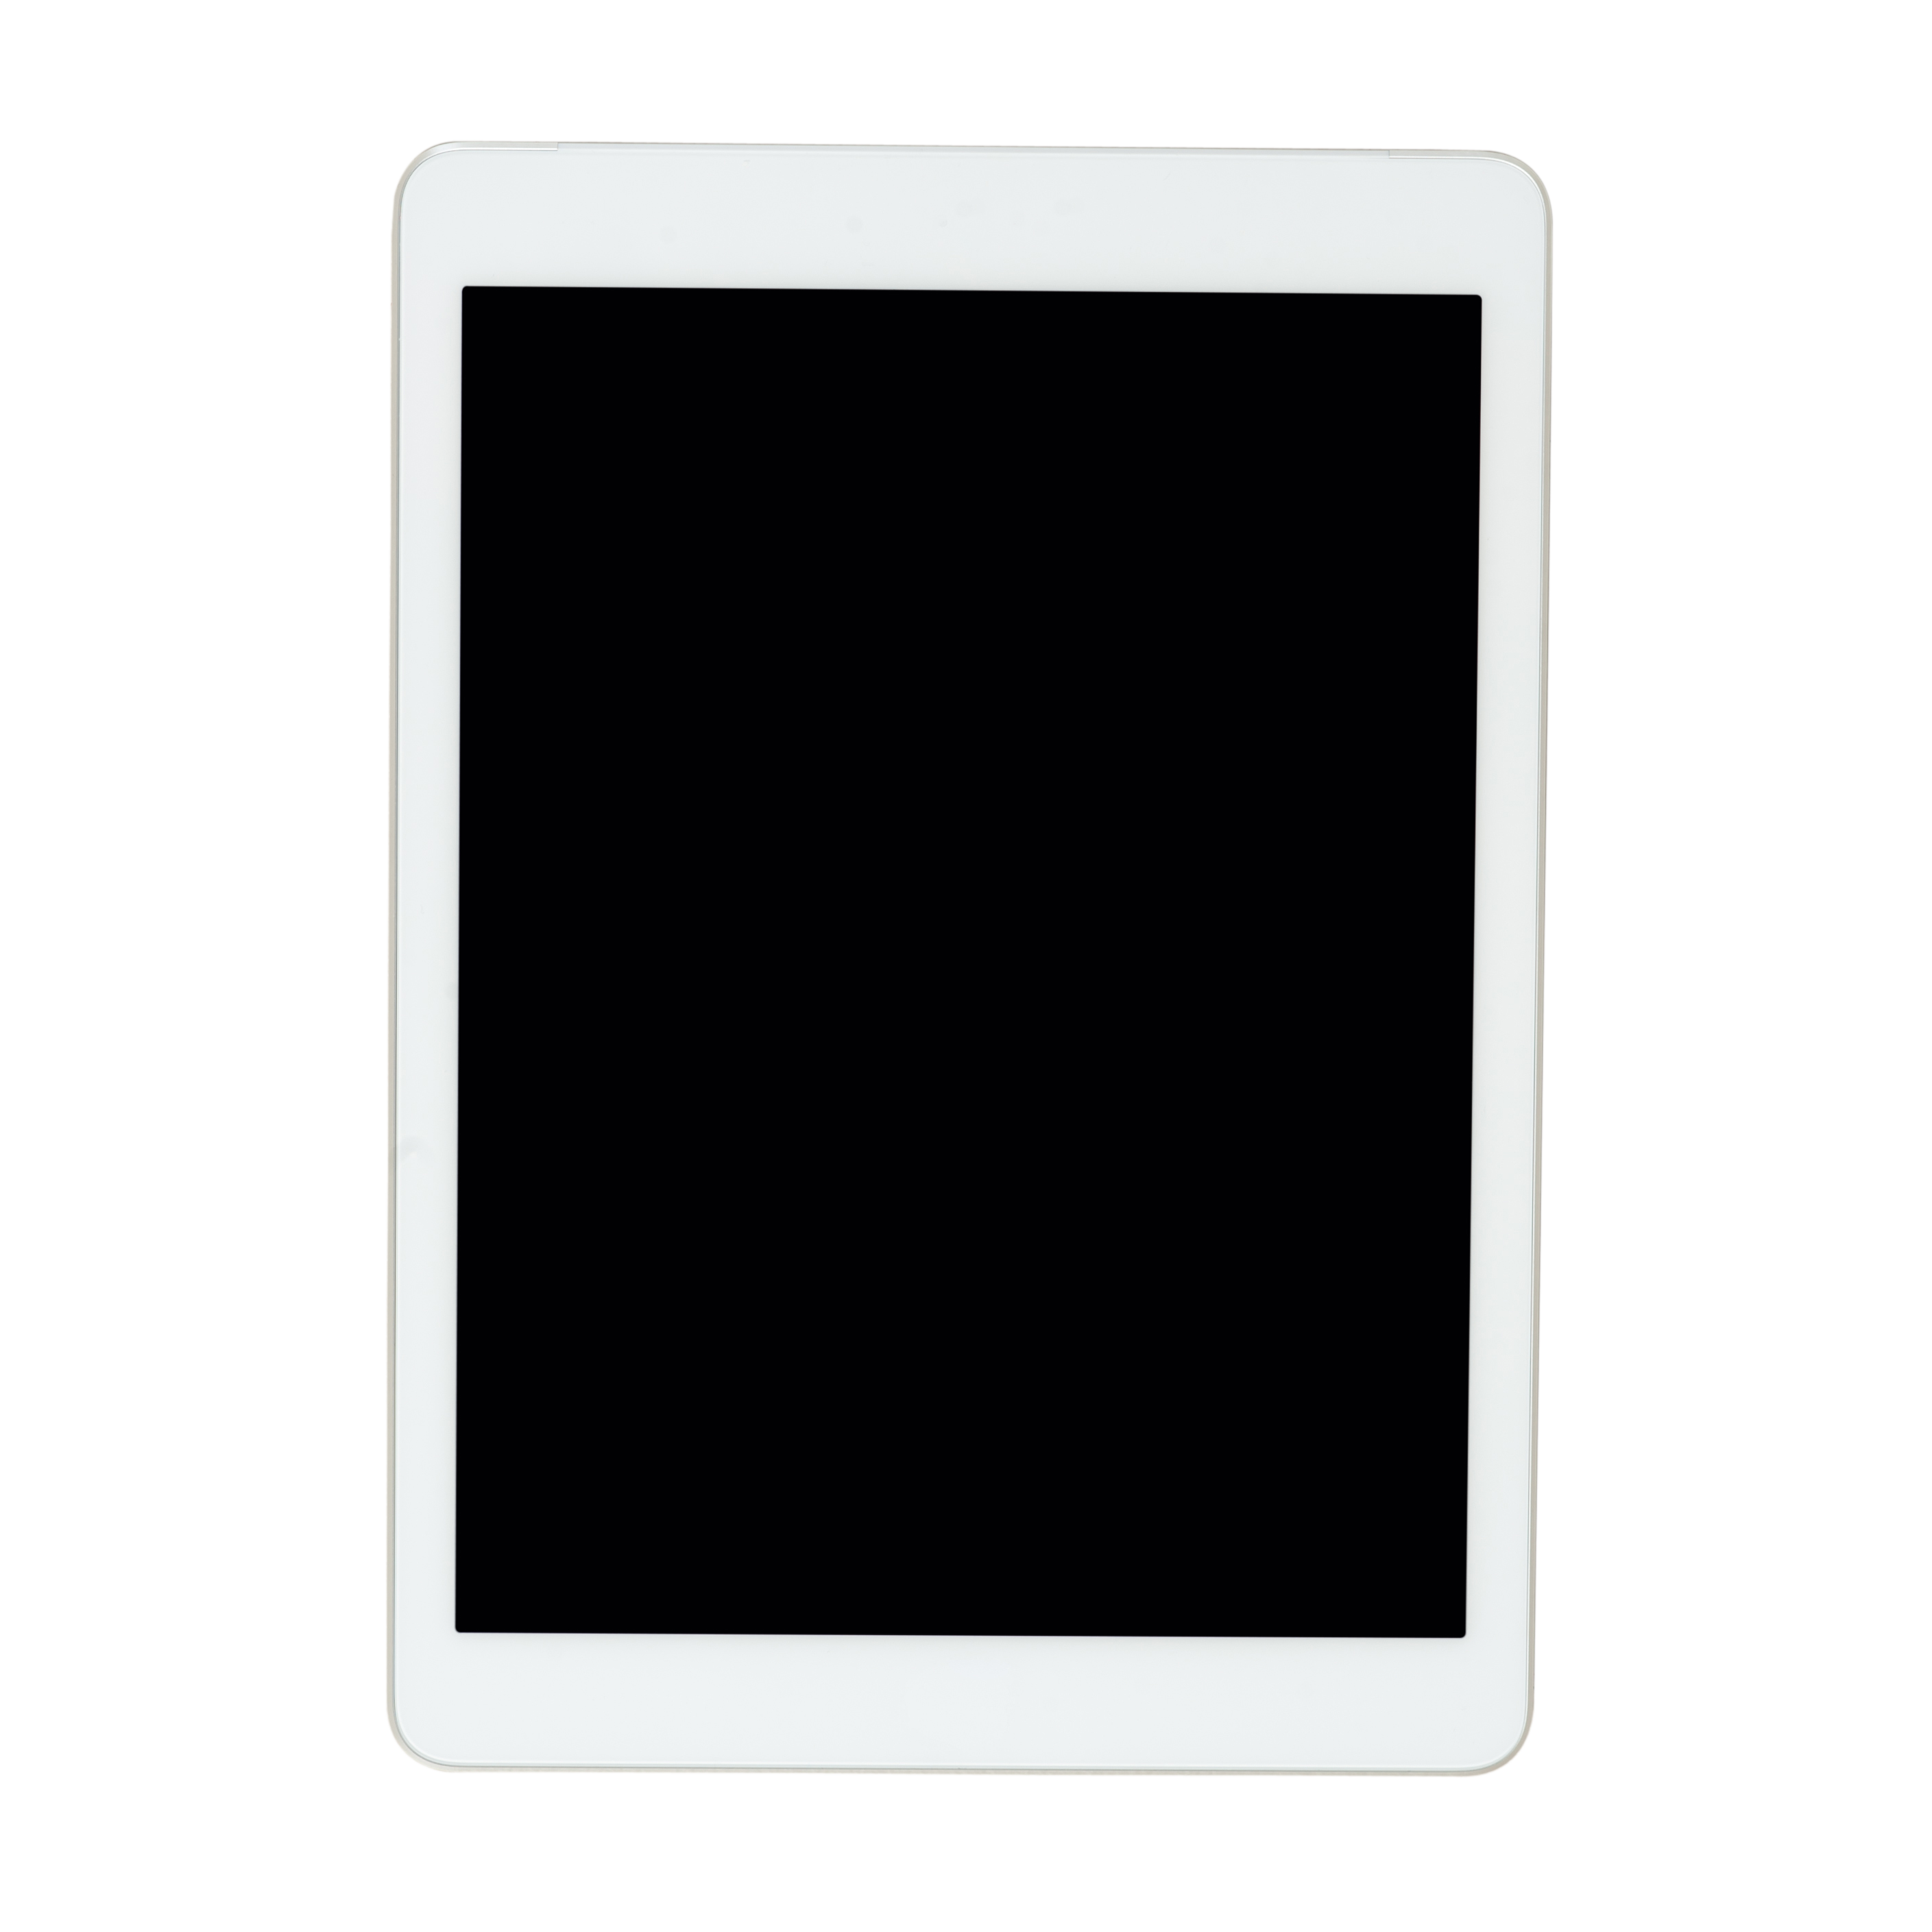 Tablet HD PNG - 117526